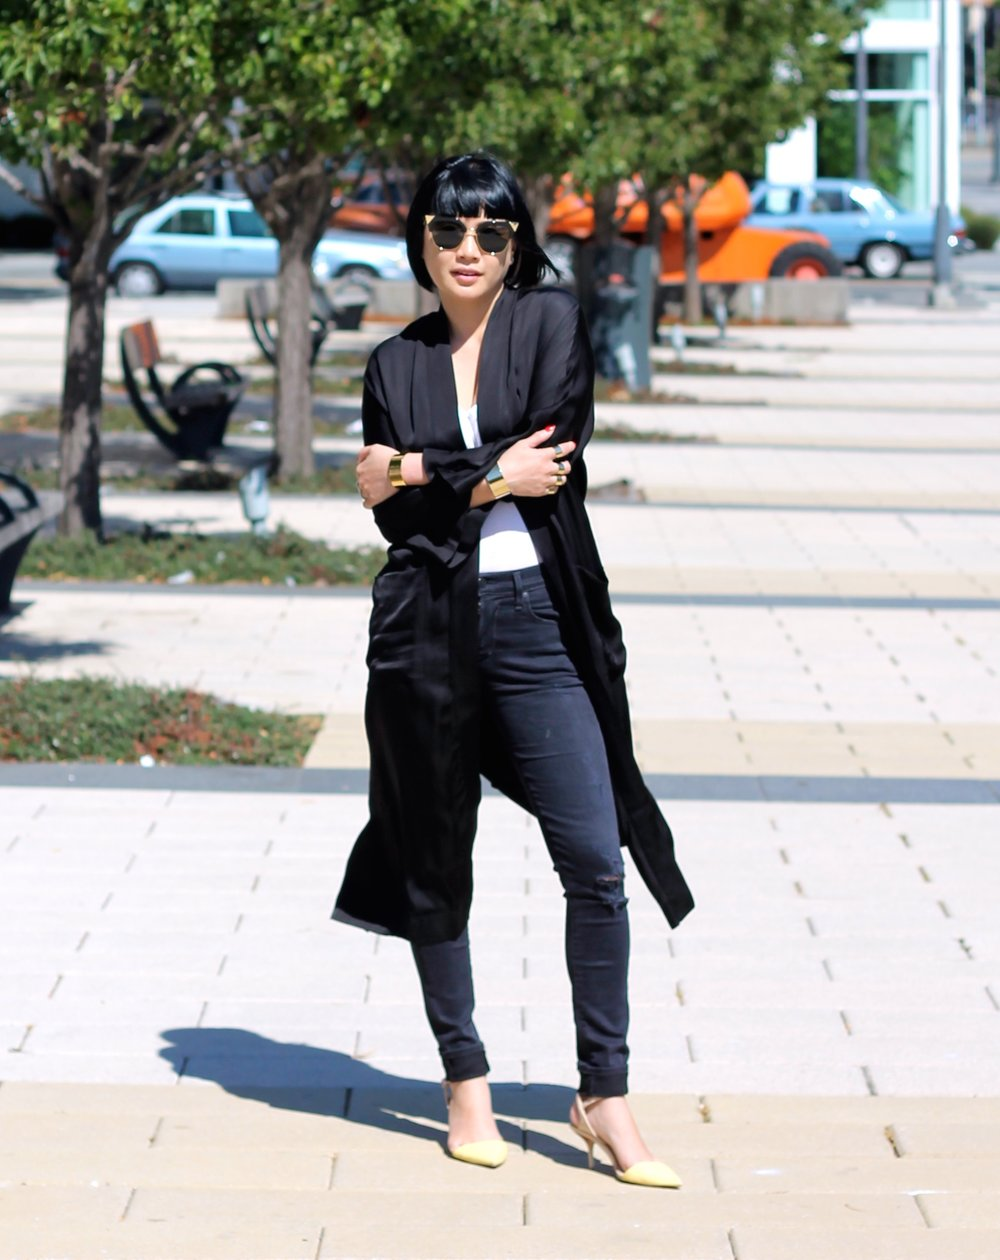 Aritzia duster jacket, Citizens of Humanity jeans, Club Monaco top, Fendi Sunglasses, Zara shoes, Svelte Metals cuffs